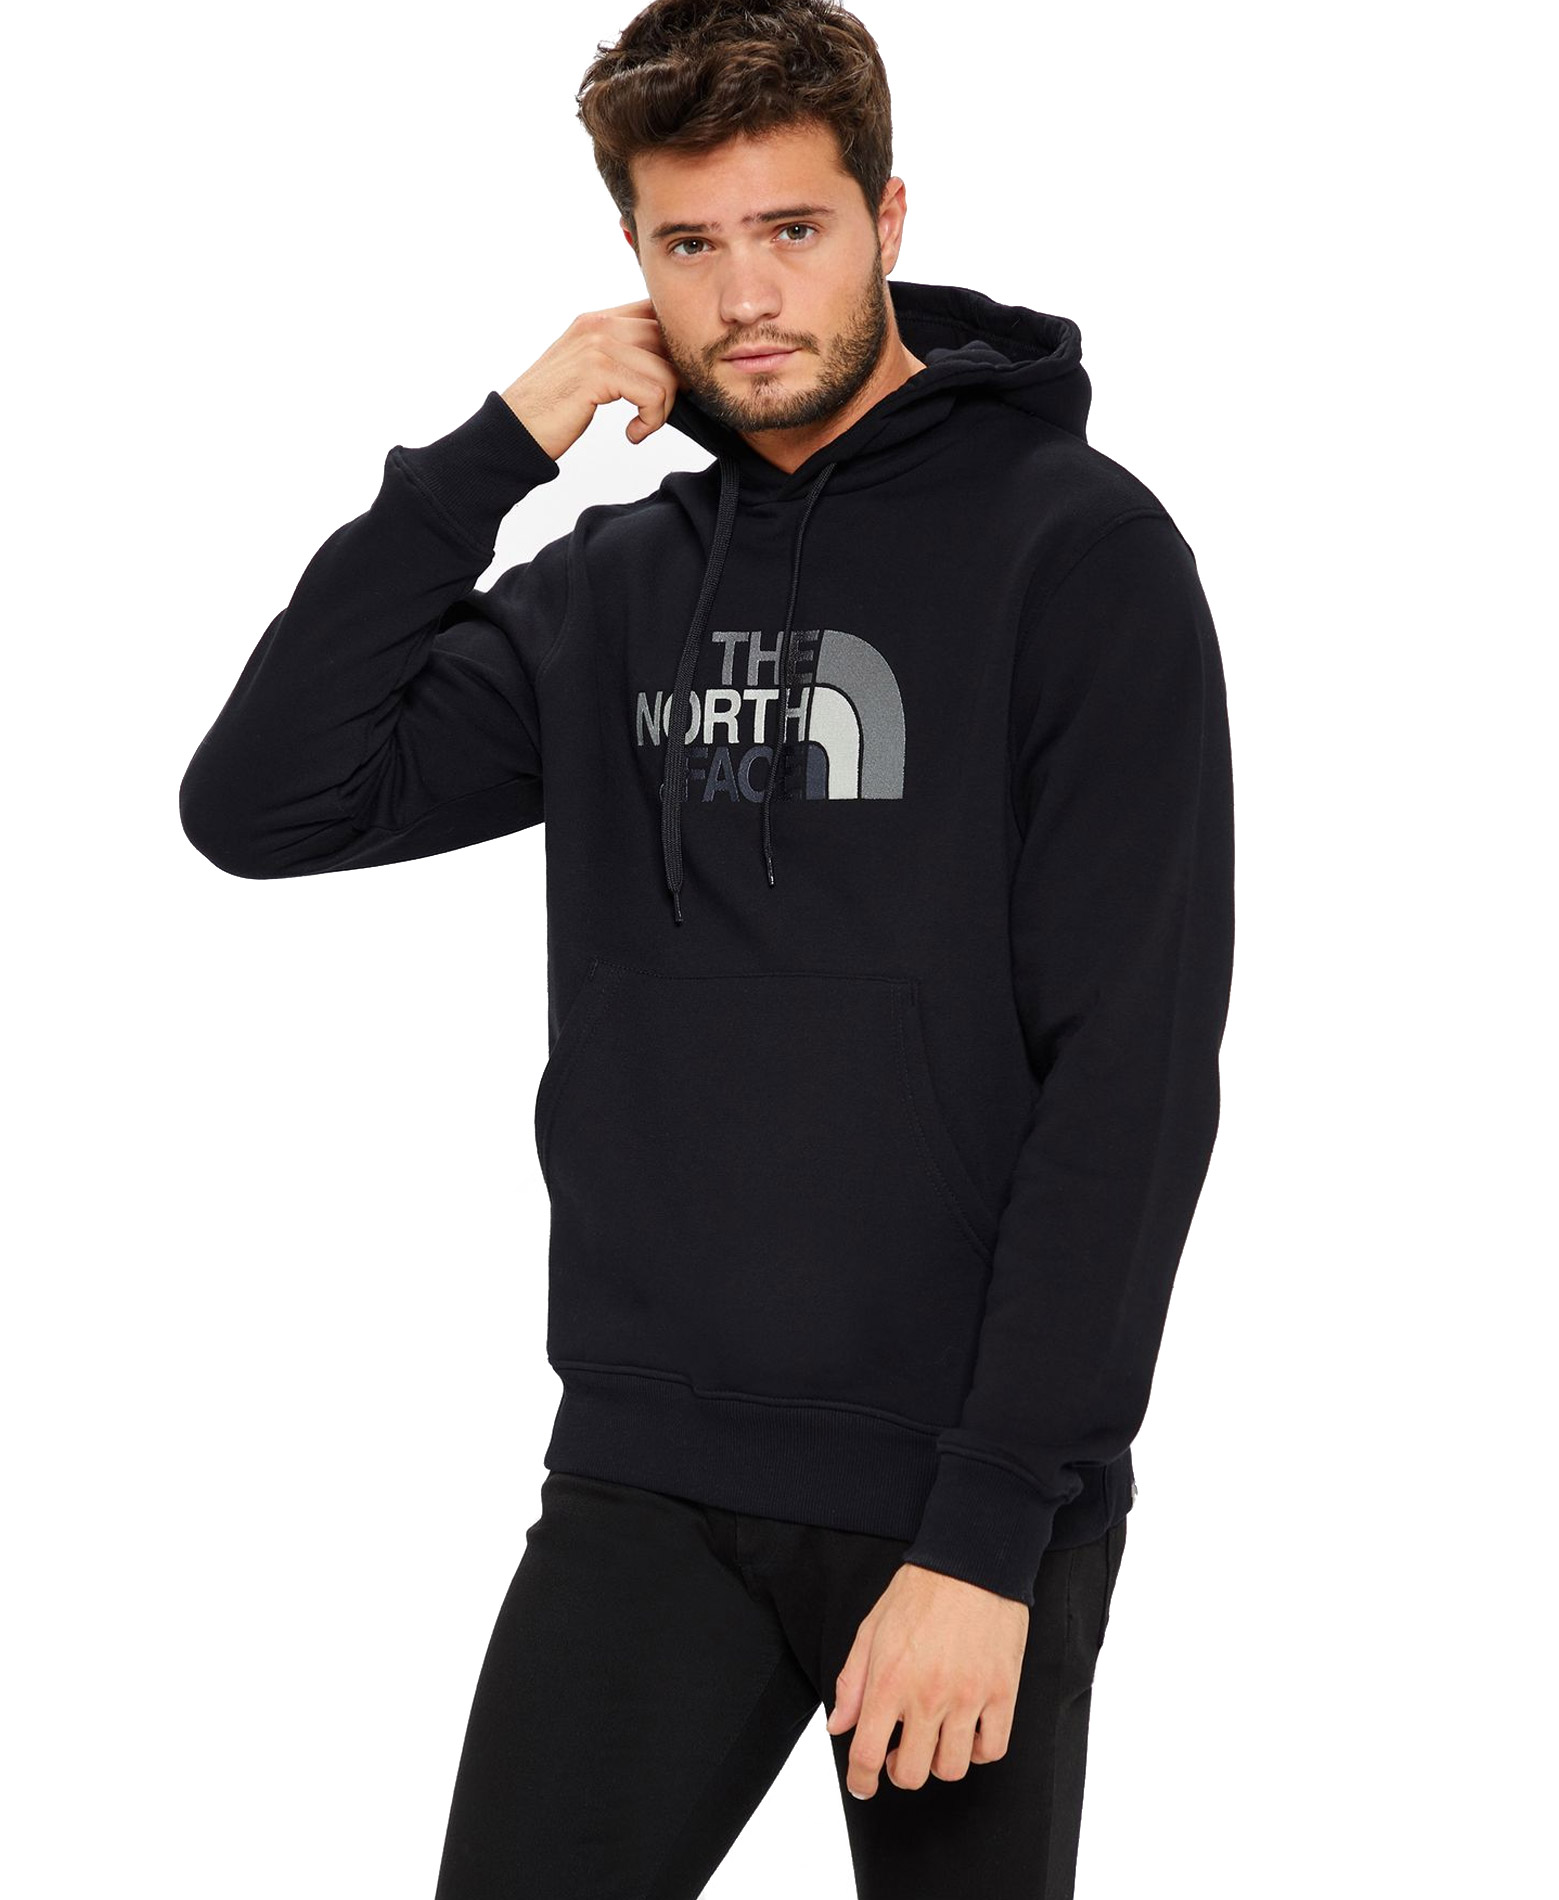 THE NORTH FACE M DREW PEAK PULLOVER HOODIE NFAHJYKX7-KX7 Μαύρο